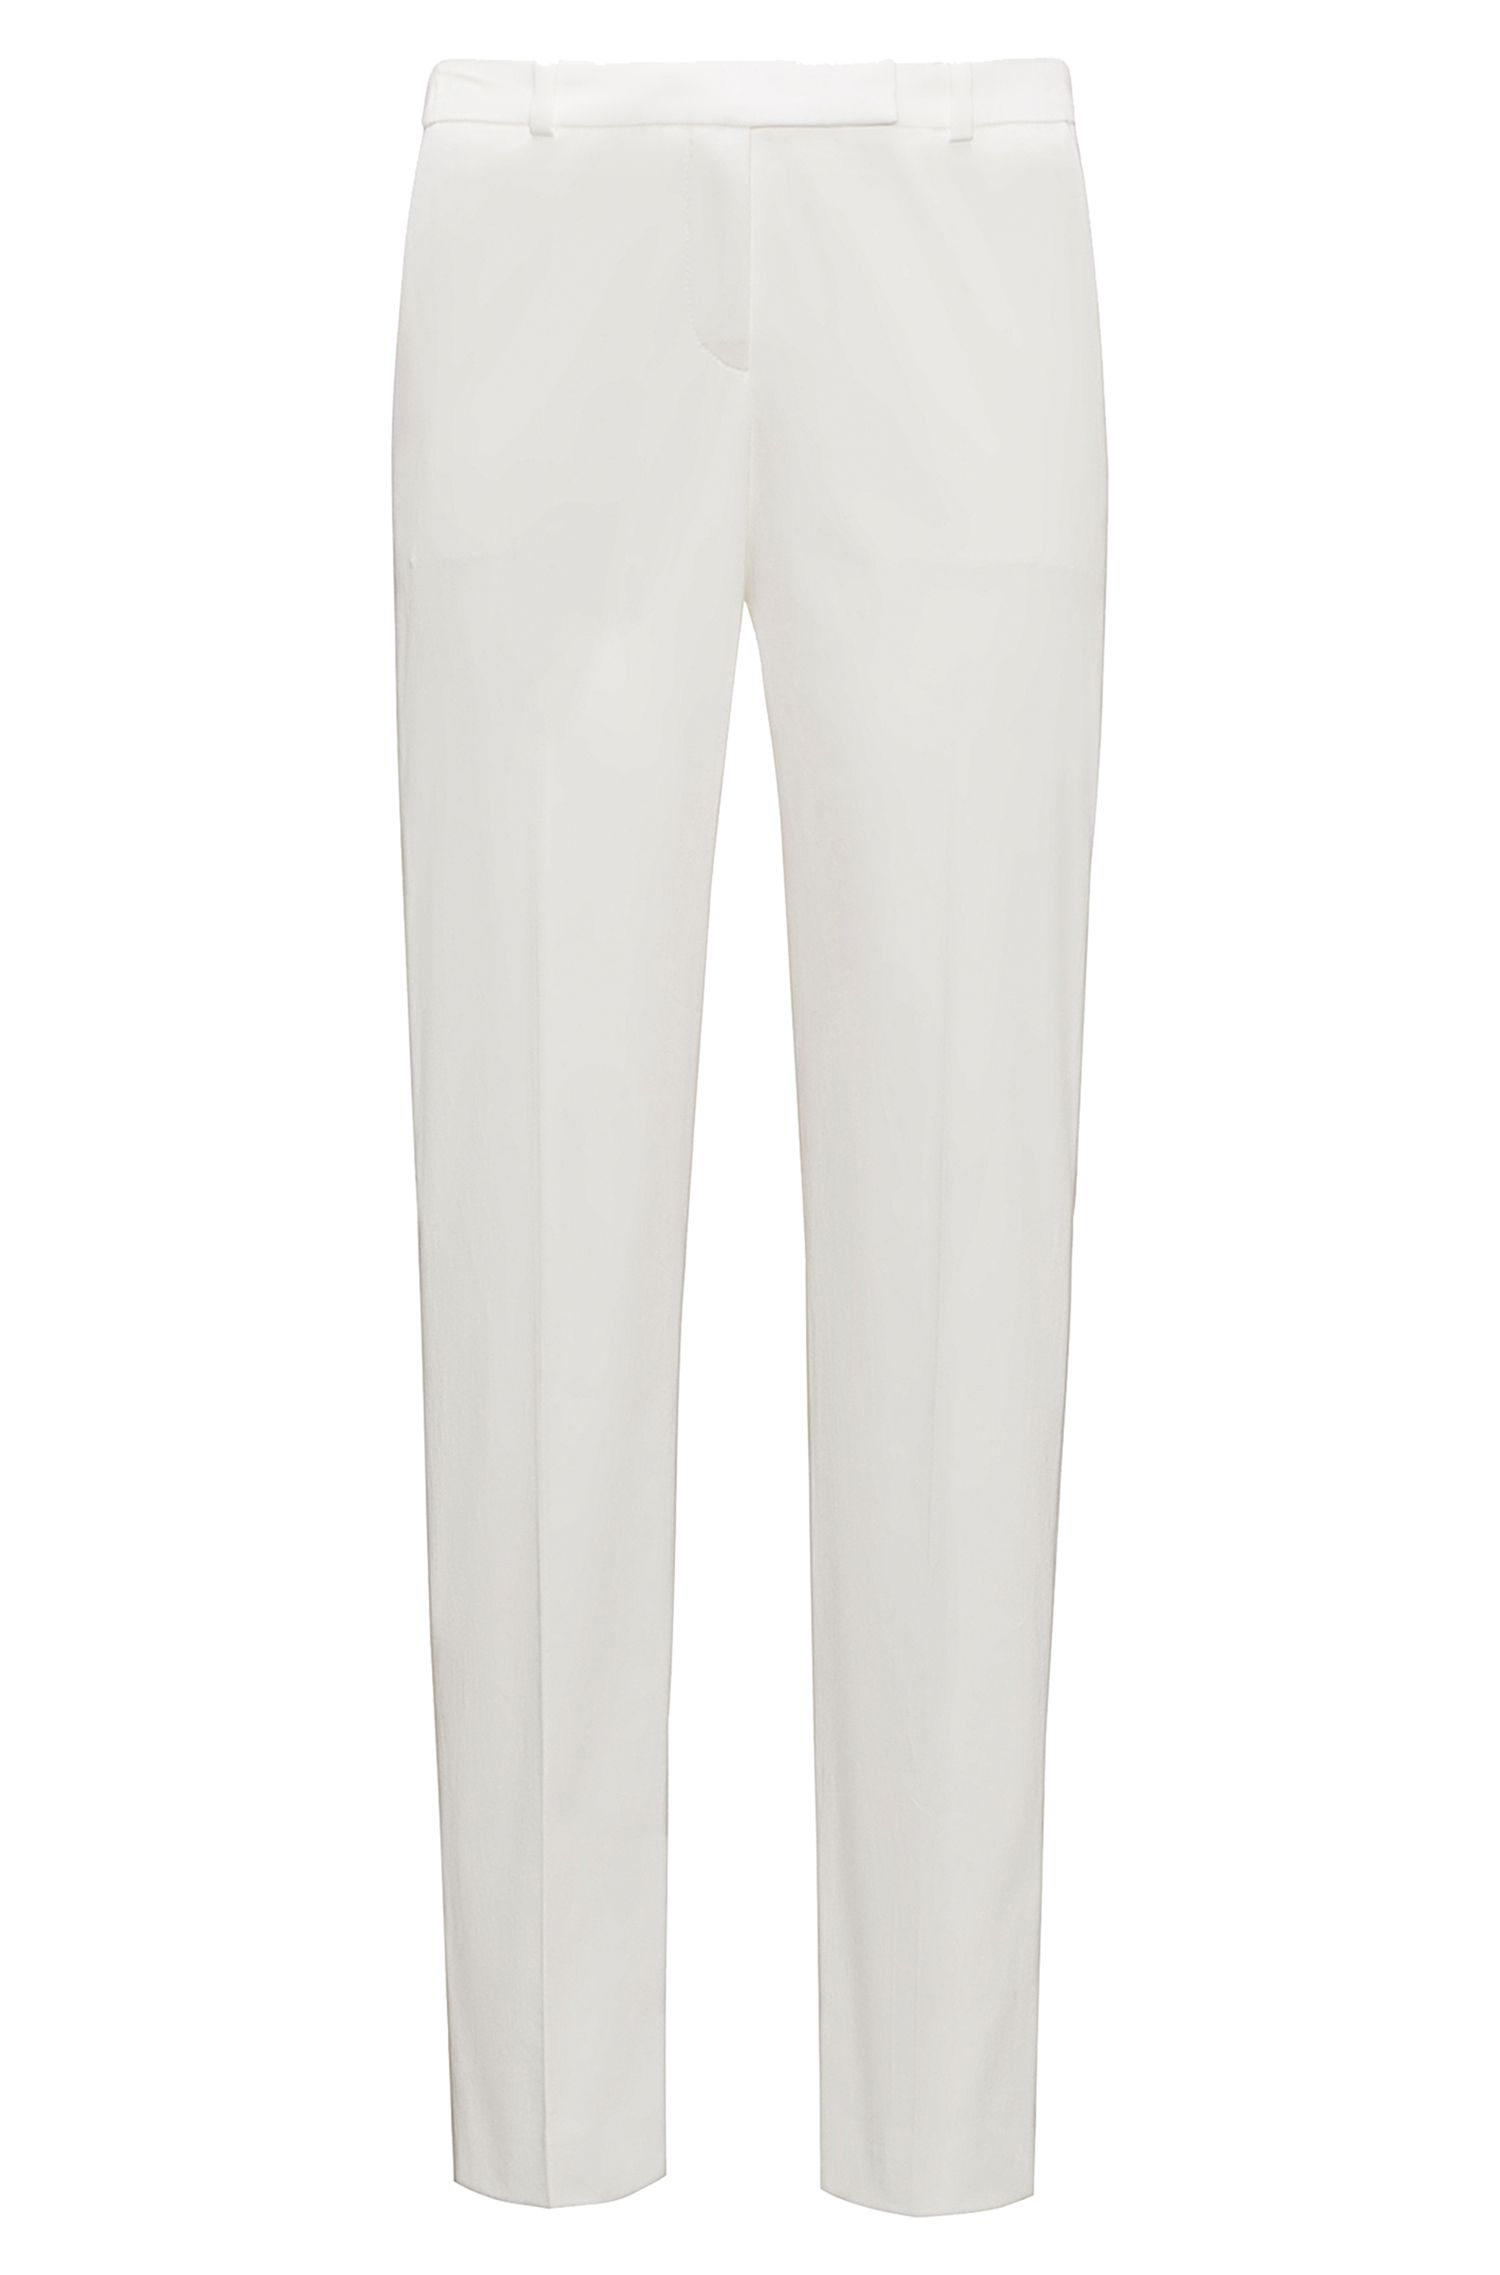 'Harile' | Stretch Cotton Low Waist Trousers